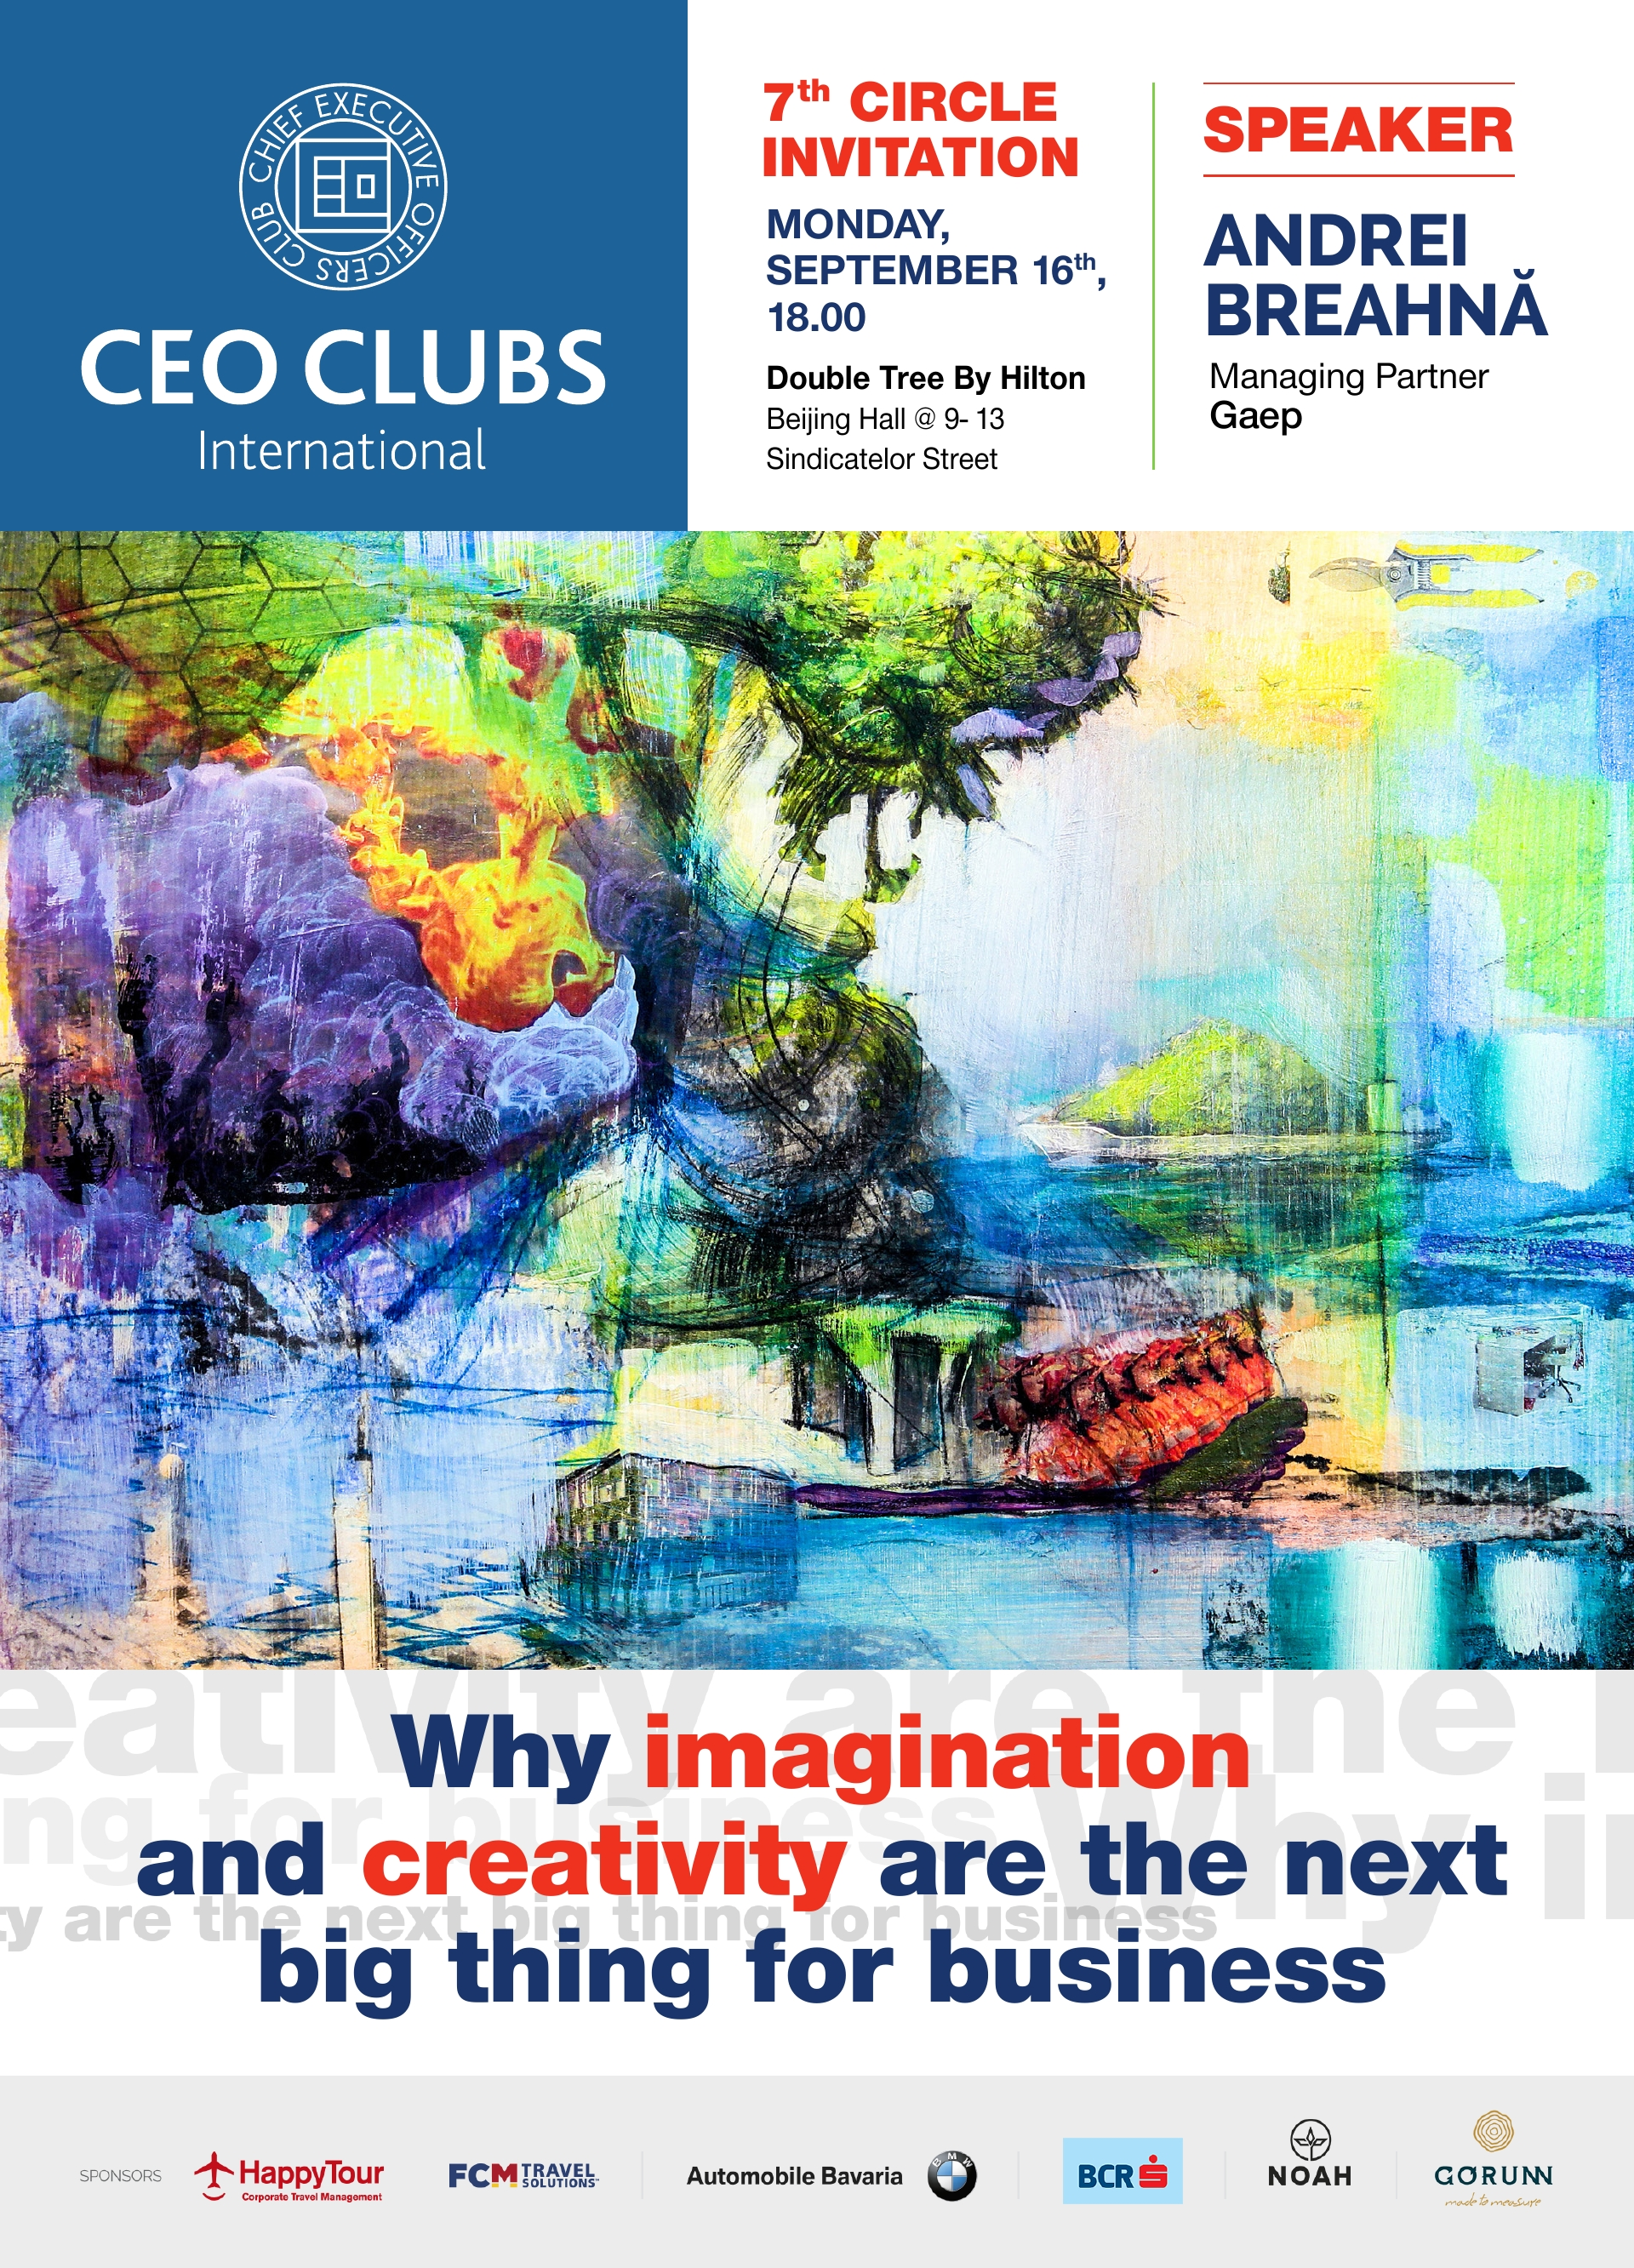 7th Circle: Why imagination and creativity are the next big thing for business